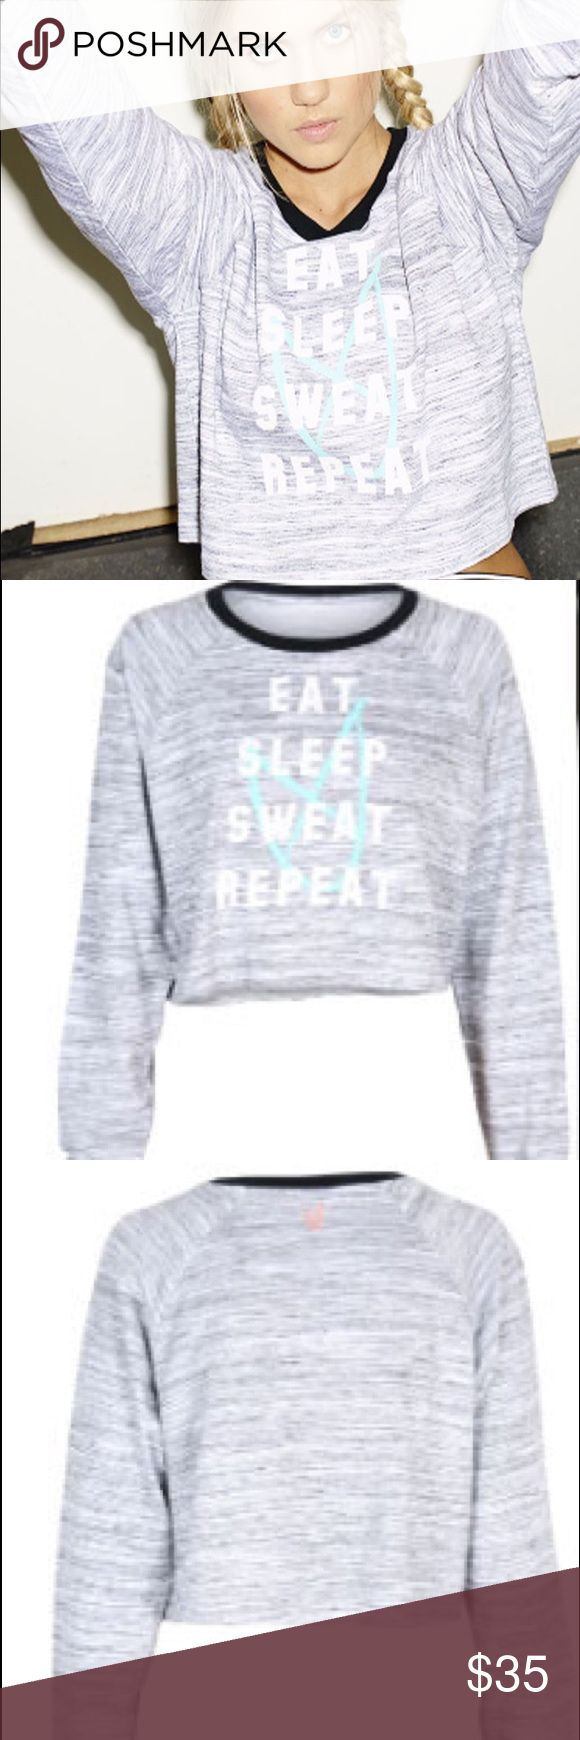 Mink Pink Repeat It Slouchy Sweater Super cute crop sweater from Mink Pink. Eat Sleep Sweat Repeat ❤️ MINKPINK Sweaters Crew & Scoop Necks